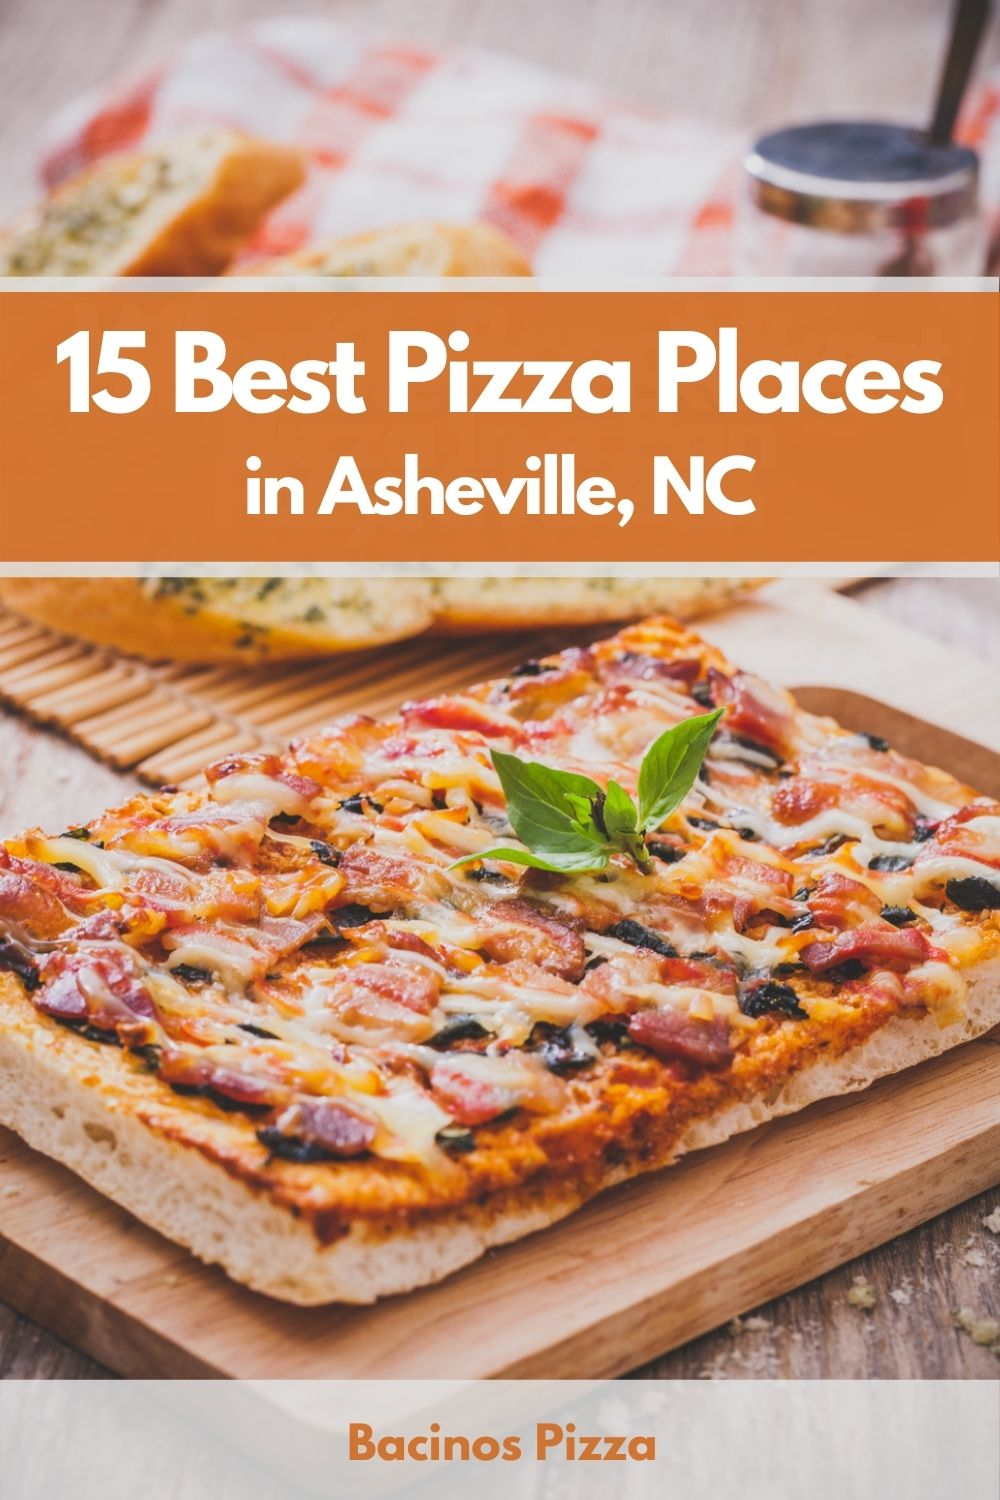 15 Best Pizza Places in Asheville, NC pin